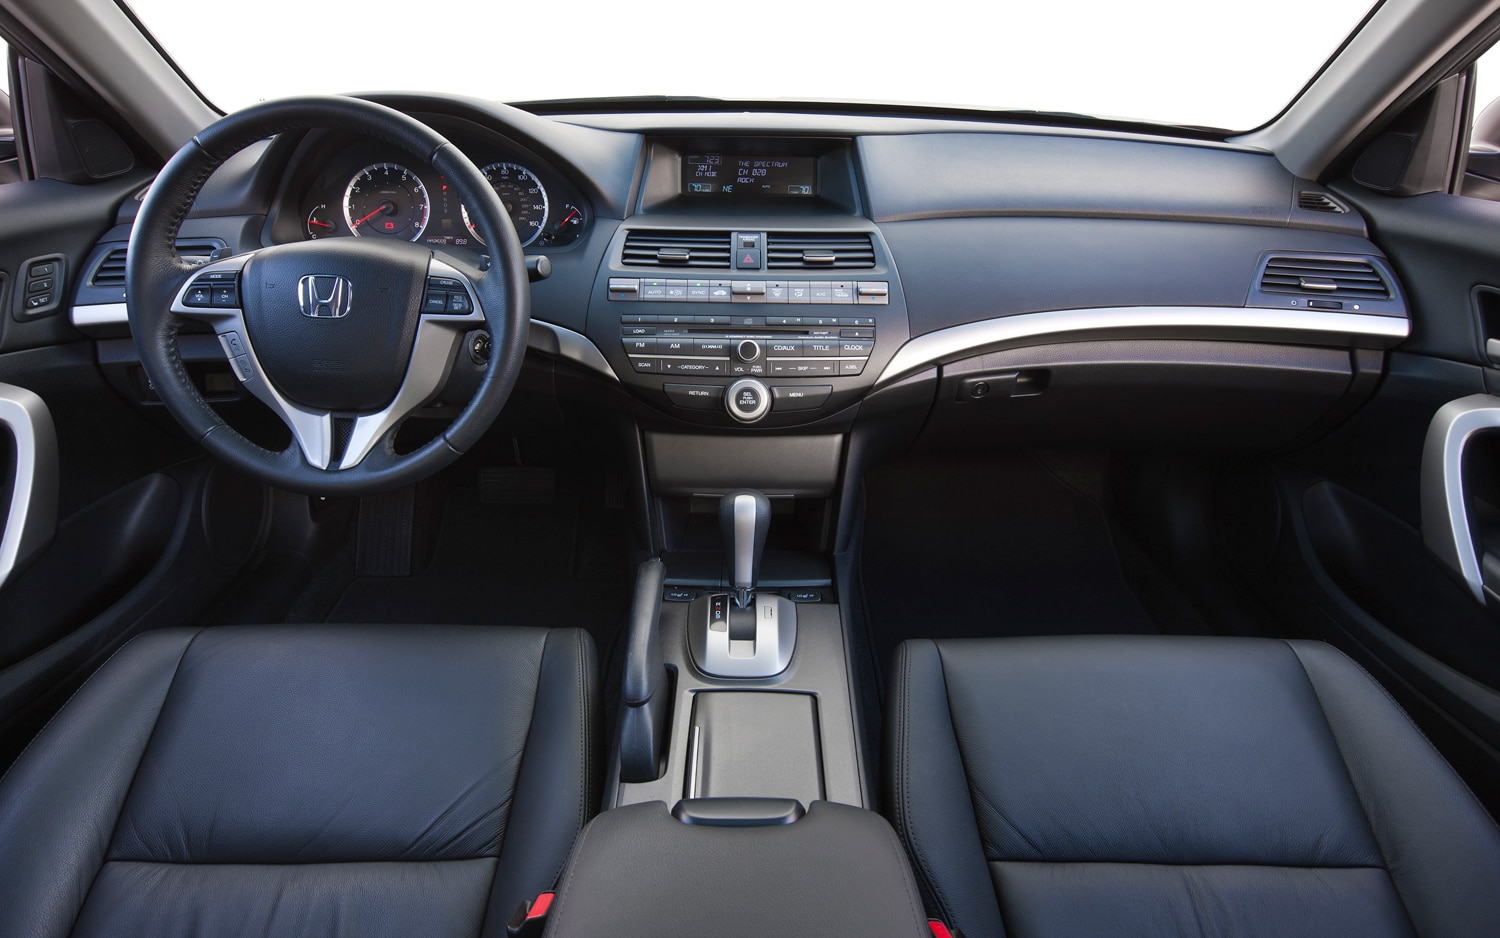 spied 2013 honda accord interior has pandora manual transmission. Black Bedroom Furniture Sets. Home Design Ideas